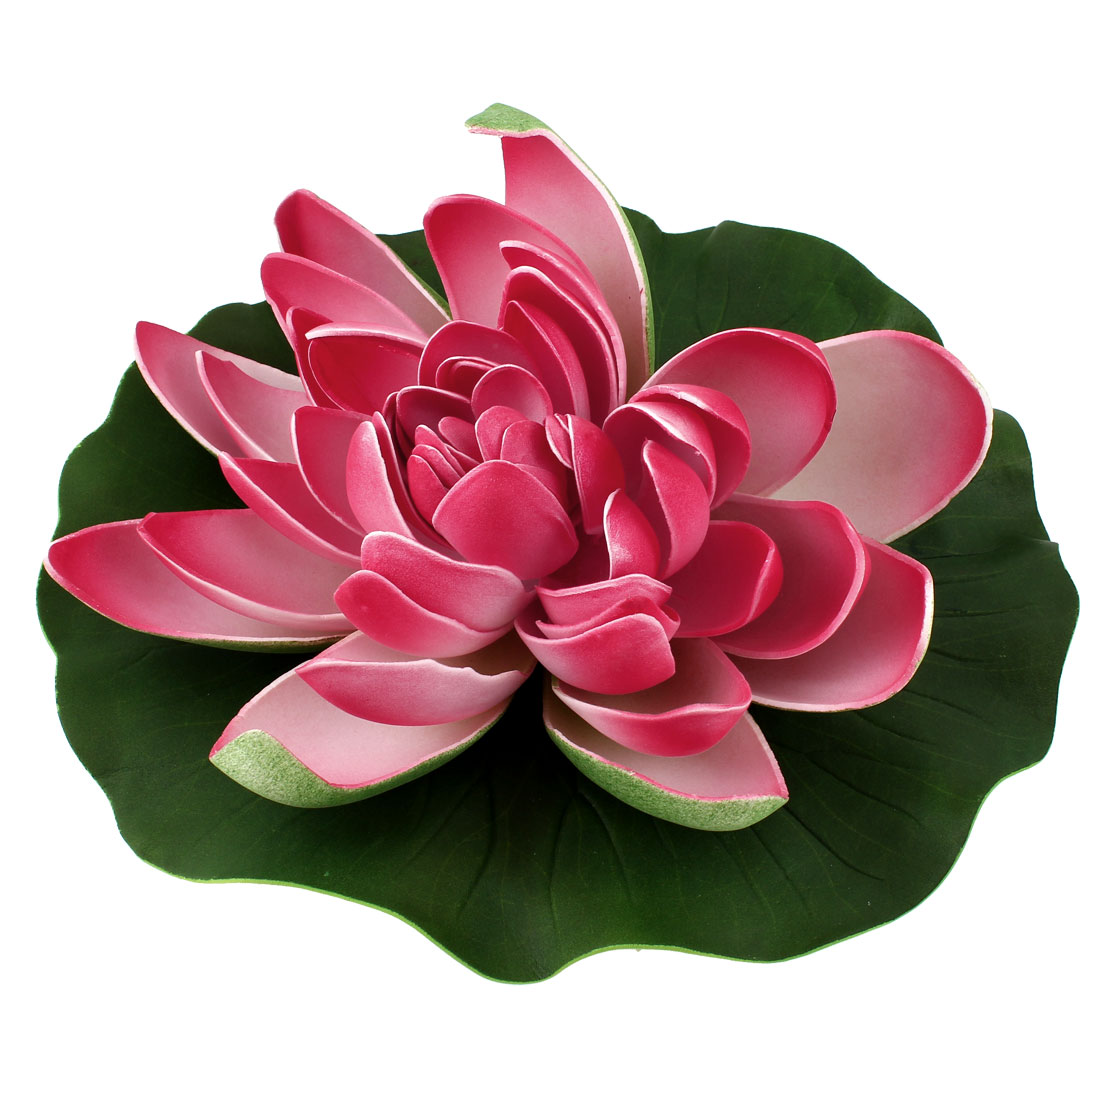 Home Garden Water Pond Decor Foam Artificial Floating Lotus Pink